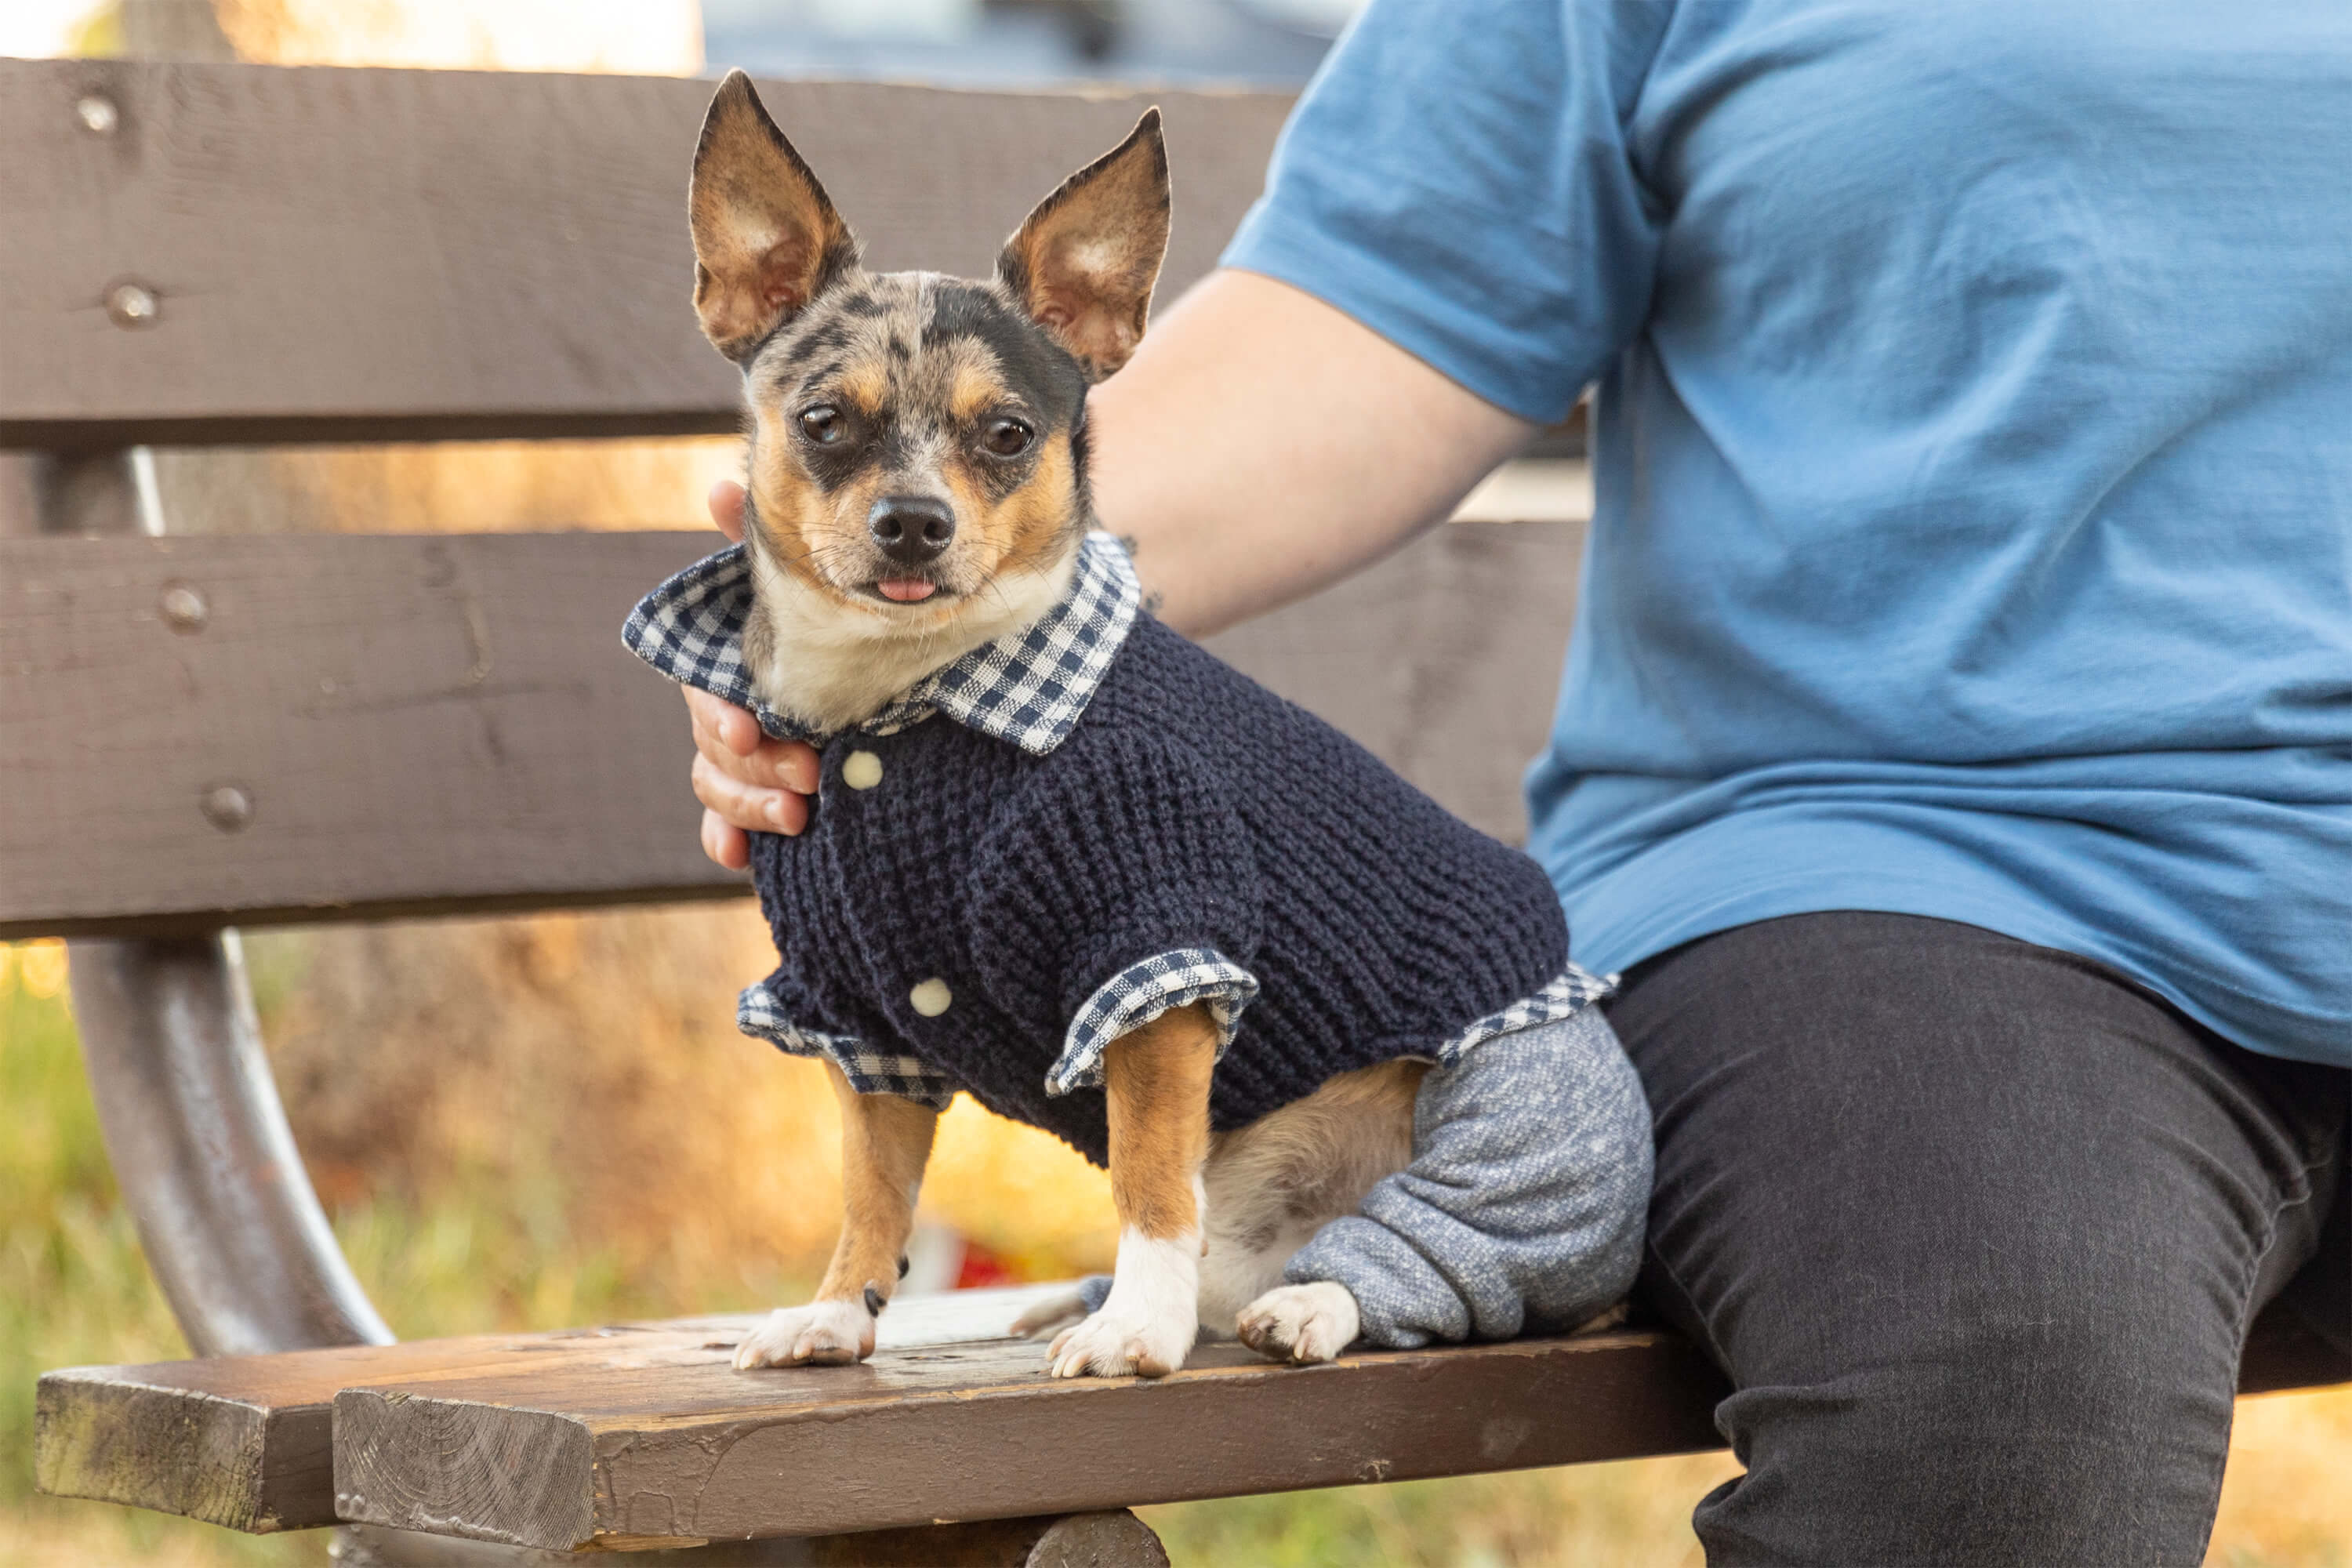 dog sitting on bench with sweater for commercial photo shoot